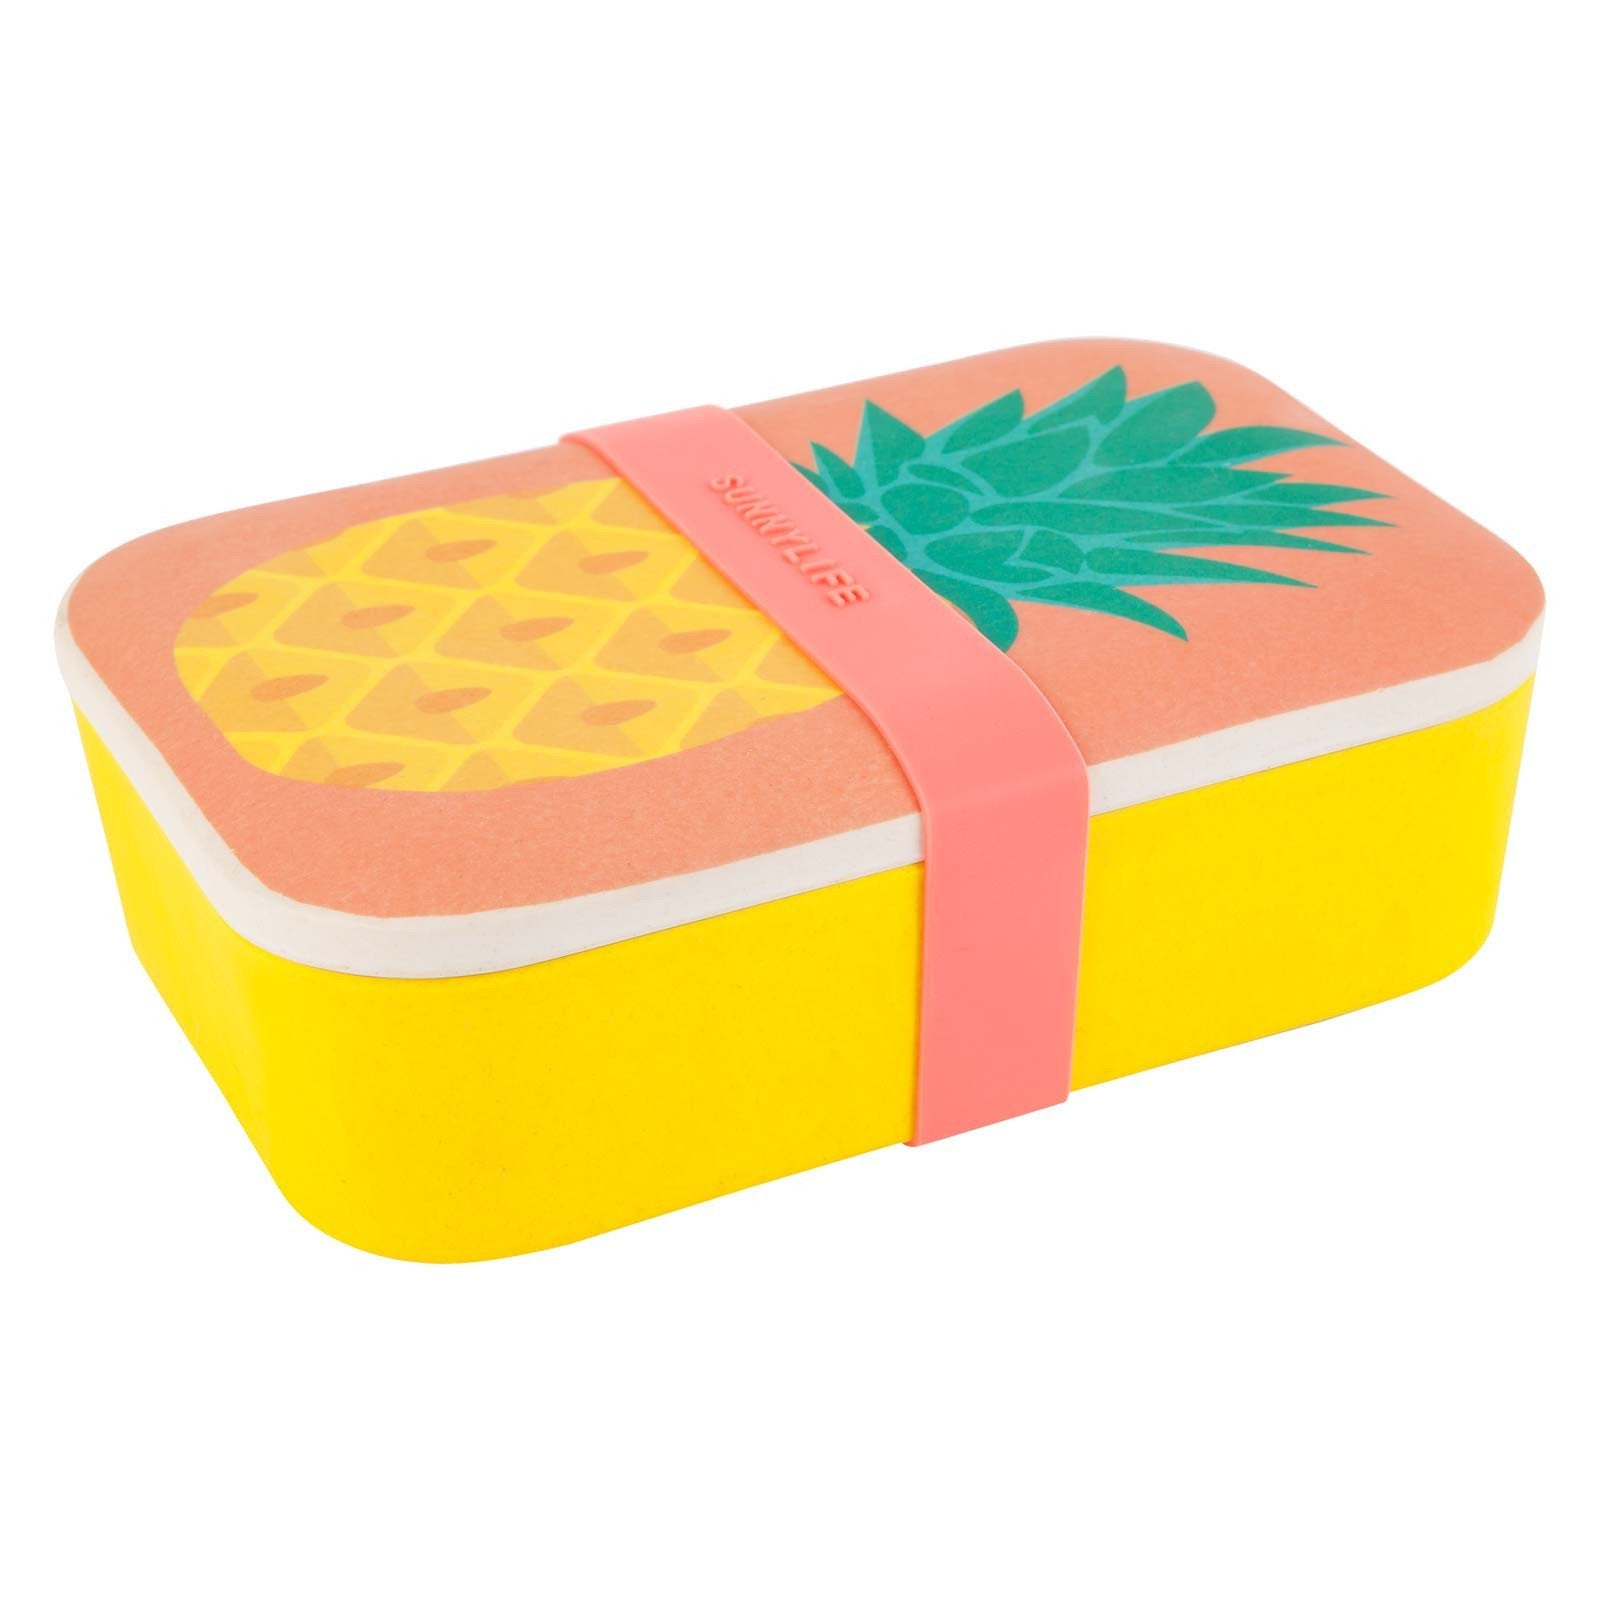 Sunnylife Eco Lunch Box Pineapple – Lusso Kids Inc.